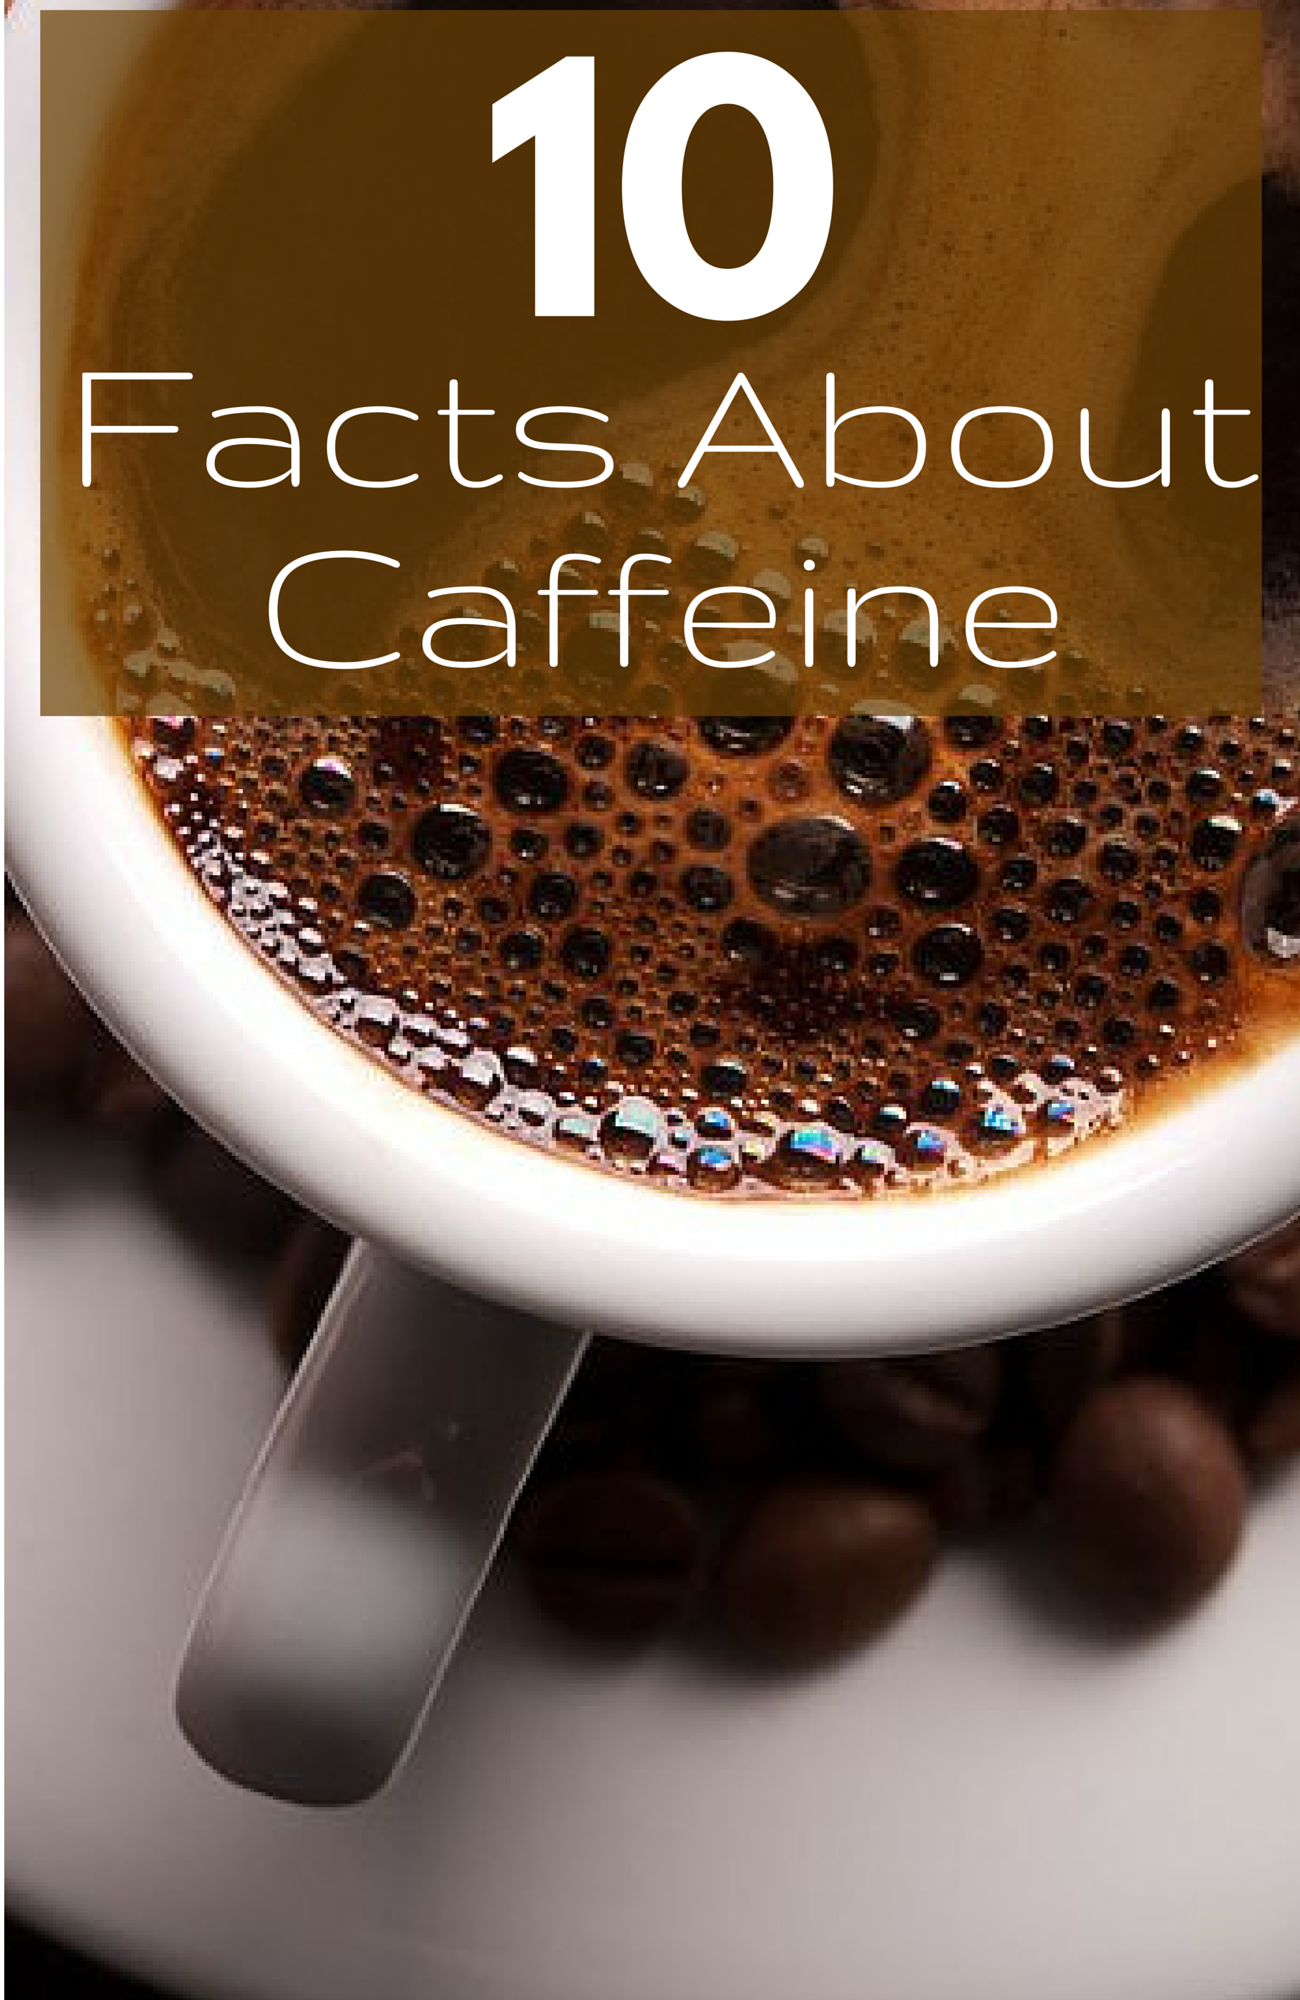 Coffee drinkers are unlikely to think about the health